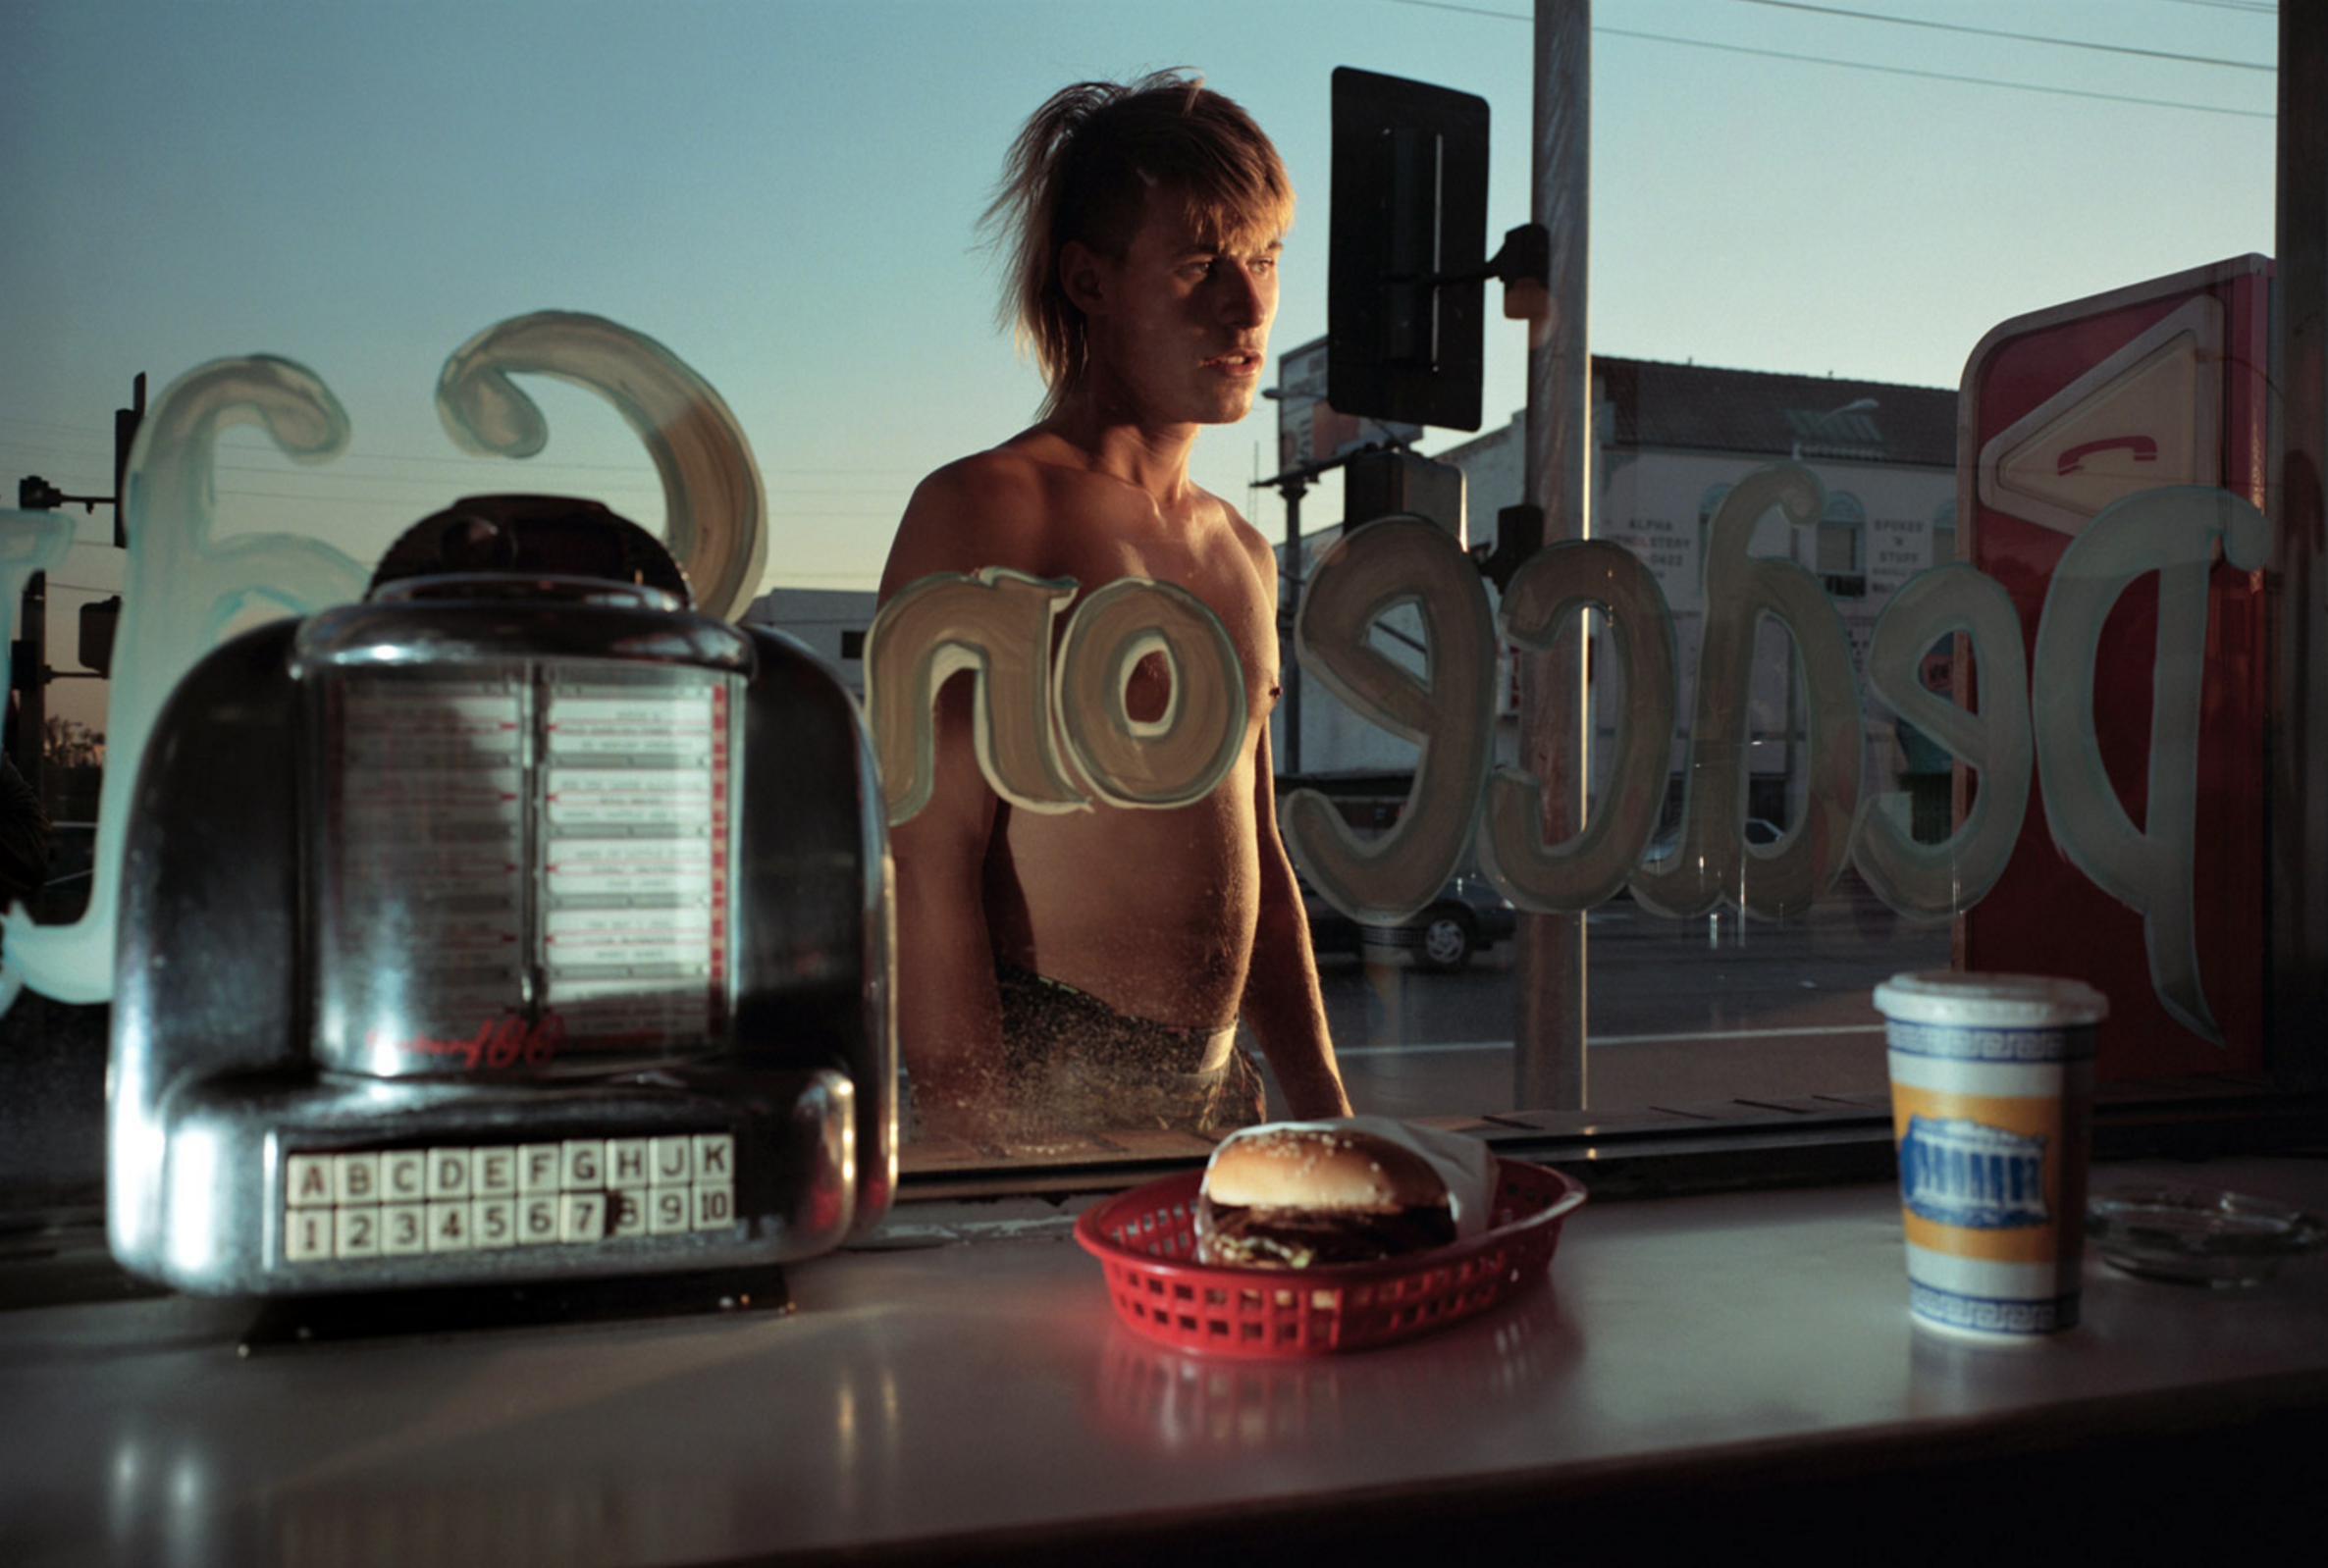 Philip-Lorca diCorcia Ike Cole, 38 years old, Los Angeles, California, $25 1990-92